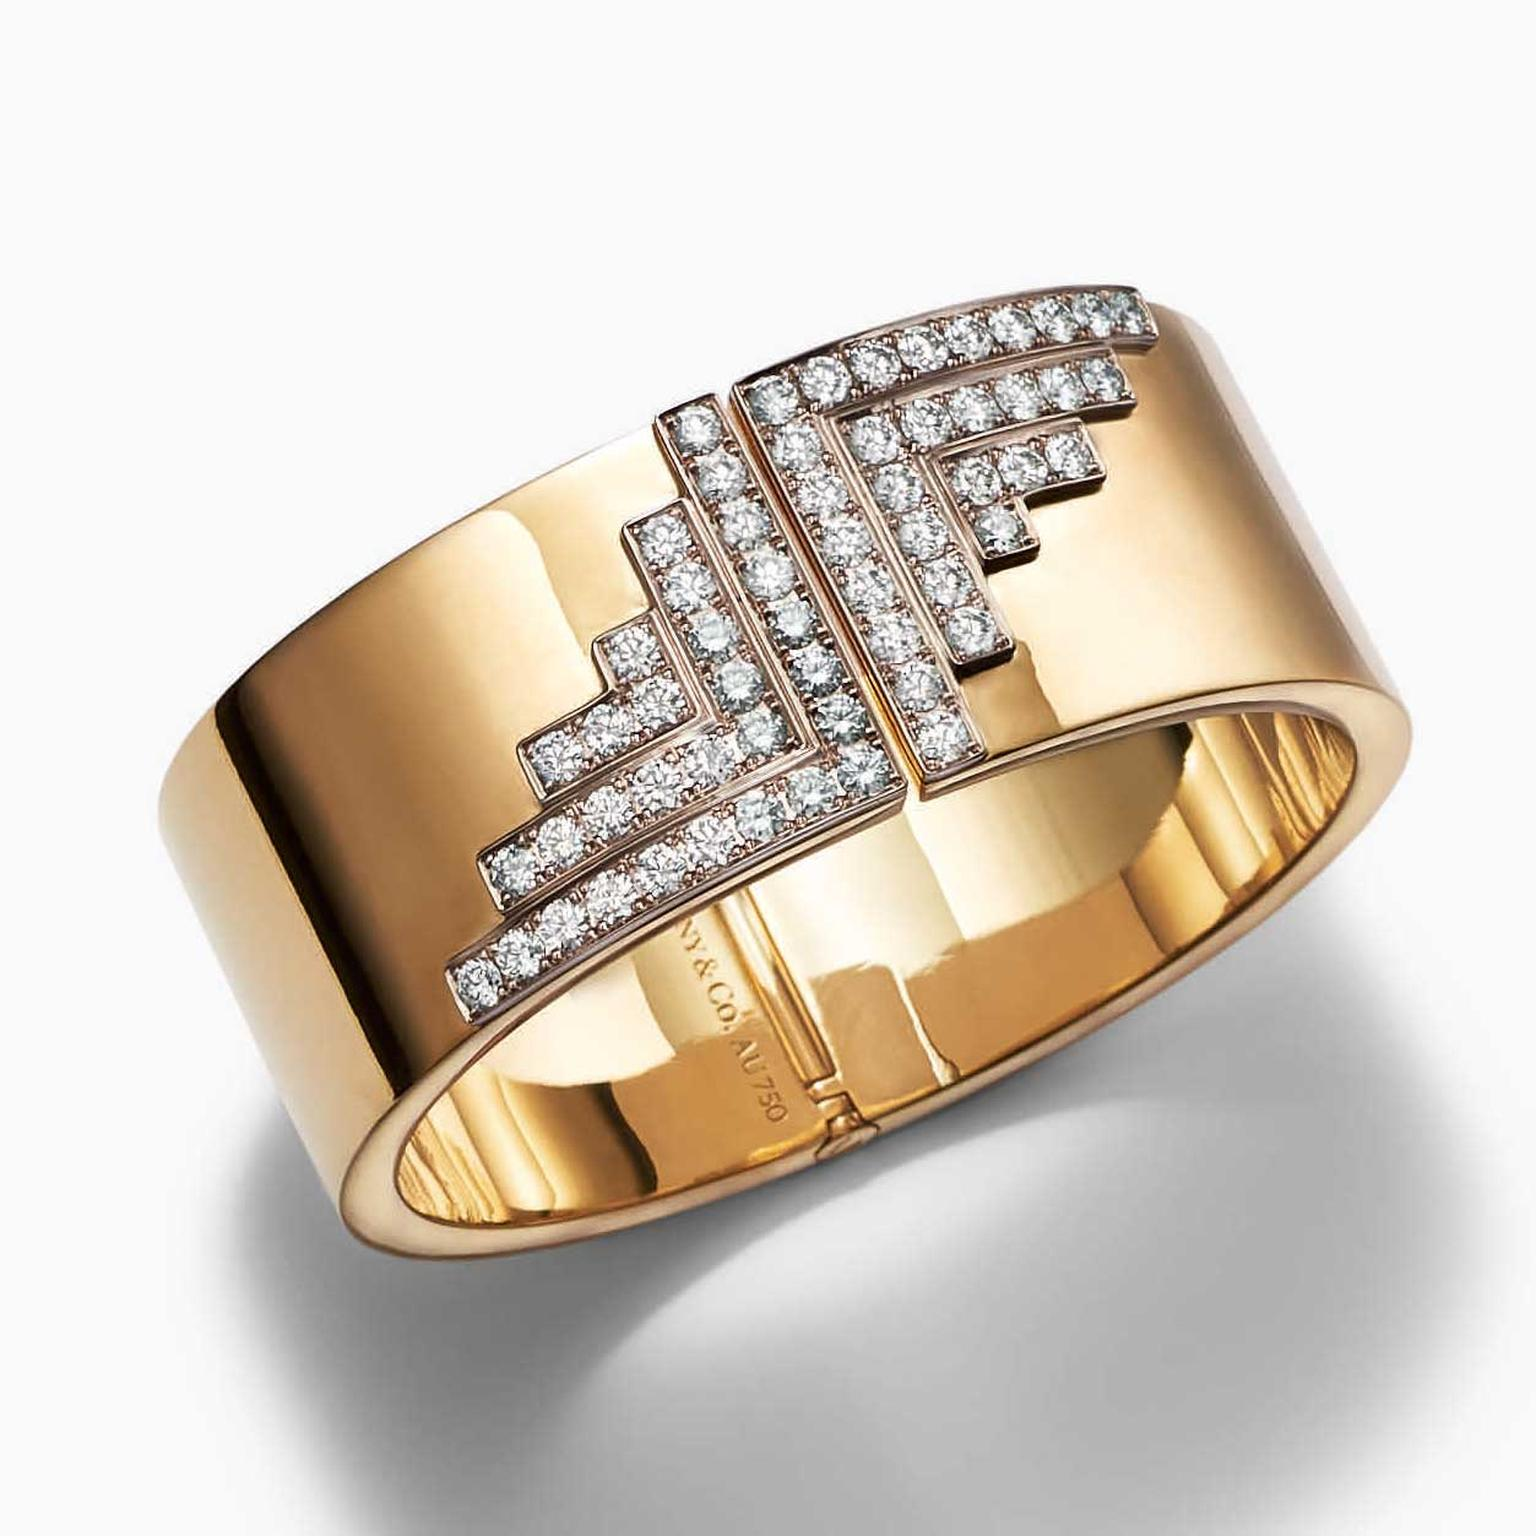 Out of Retirement Tiffany hinged gold cuff with diamonds, available at Dover Street Market